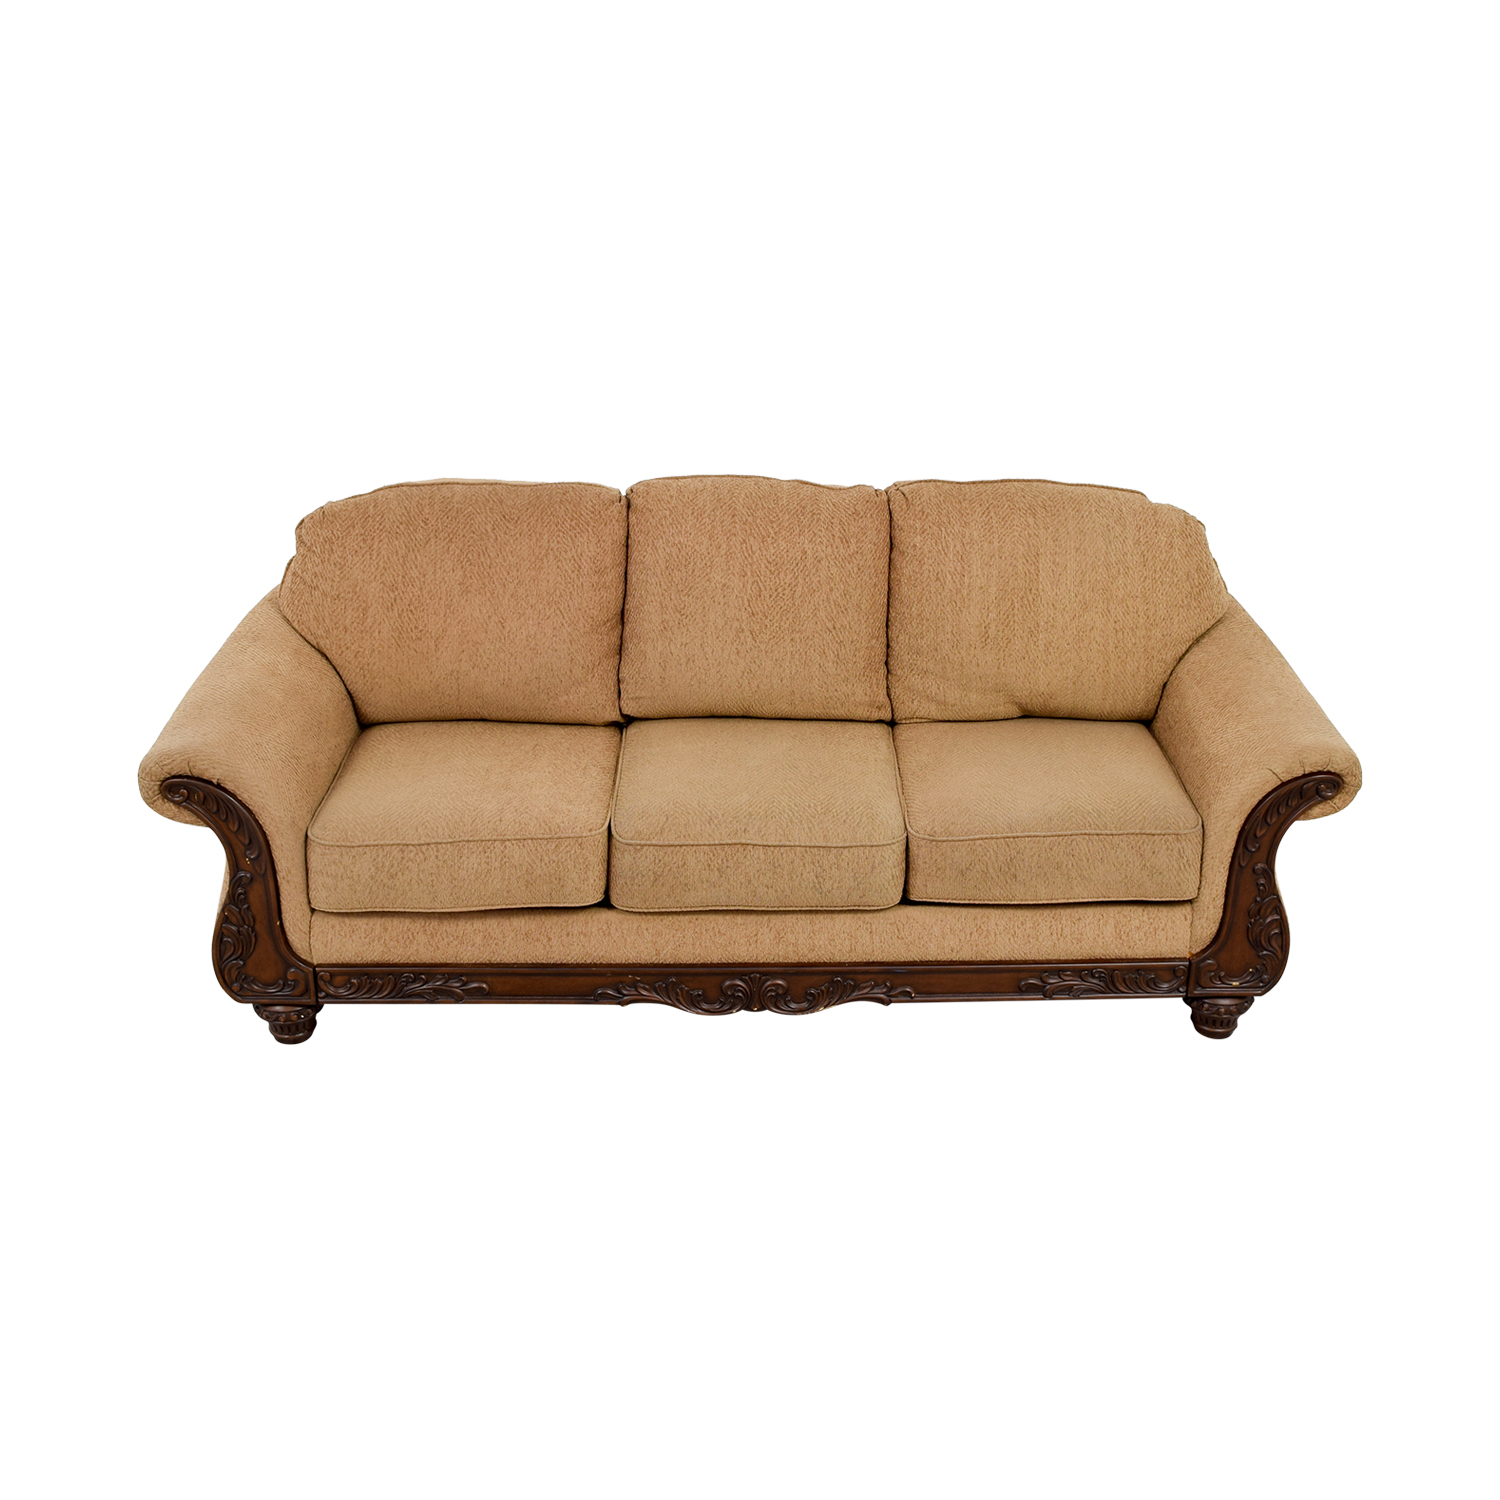 buy Havertys Gold Carved Wood Couch Havertys Classic Sofas